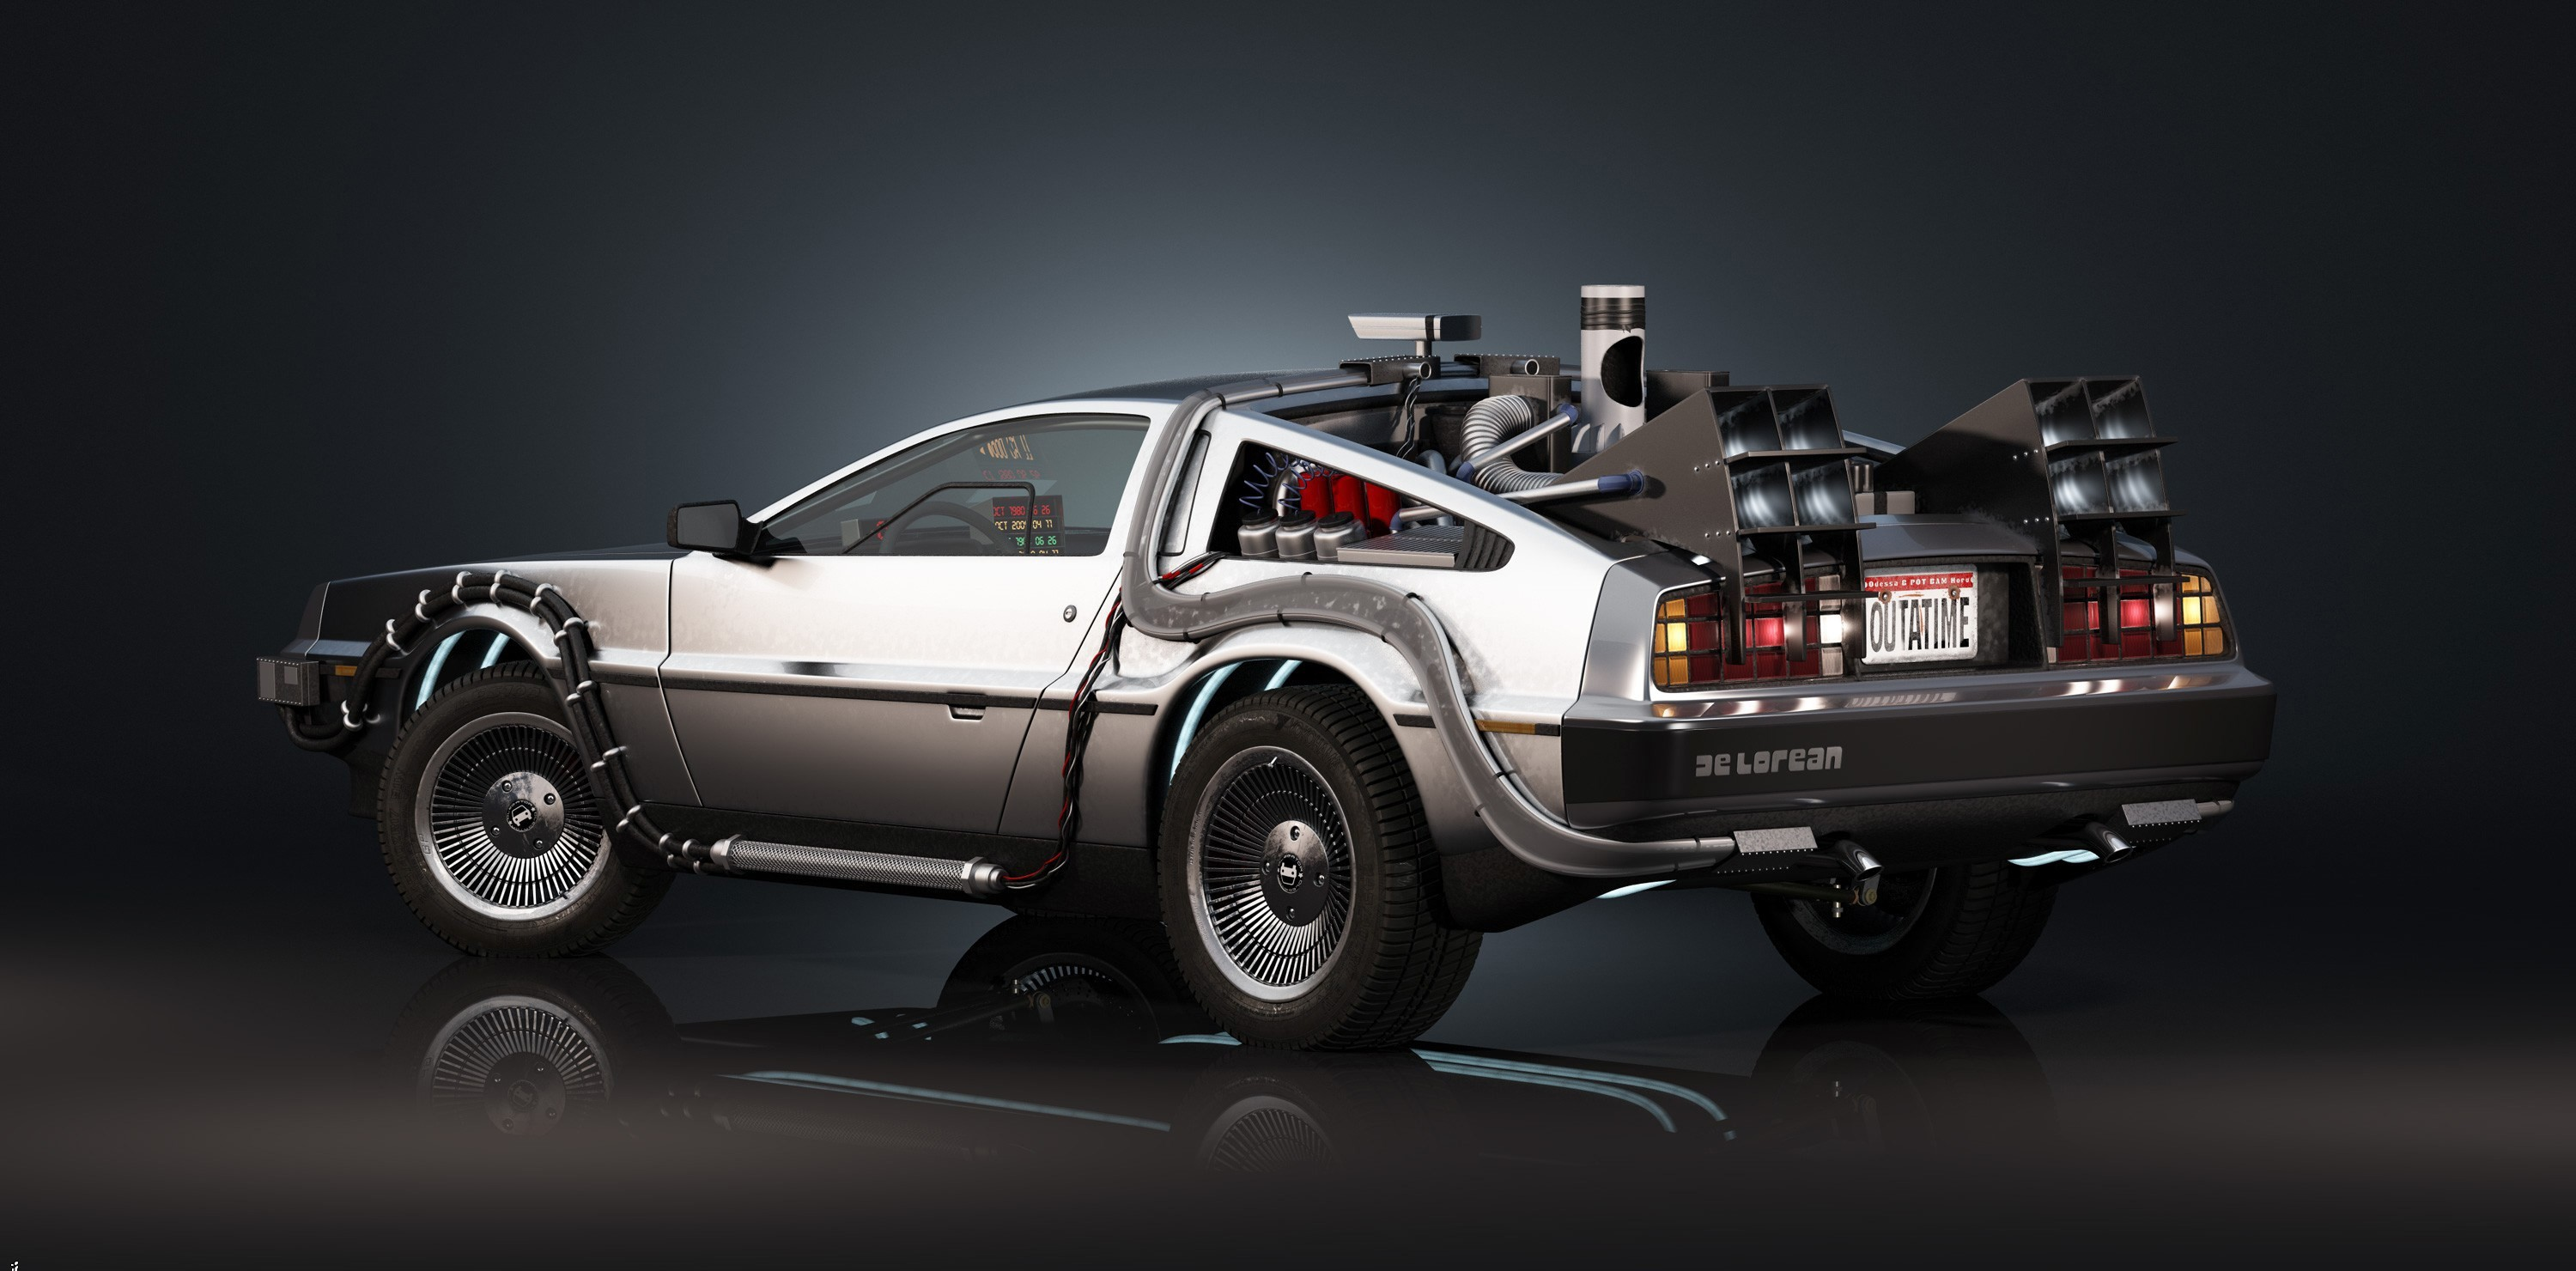 free wallpaper and screensavers for back to the future